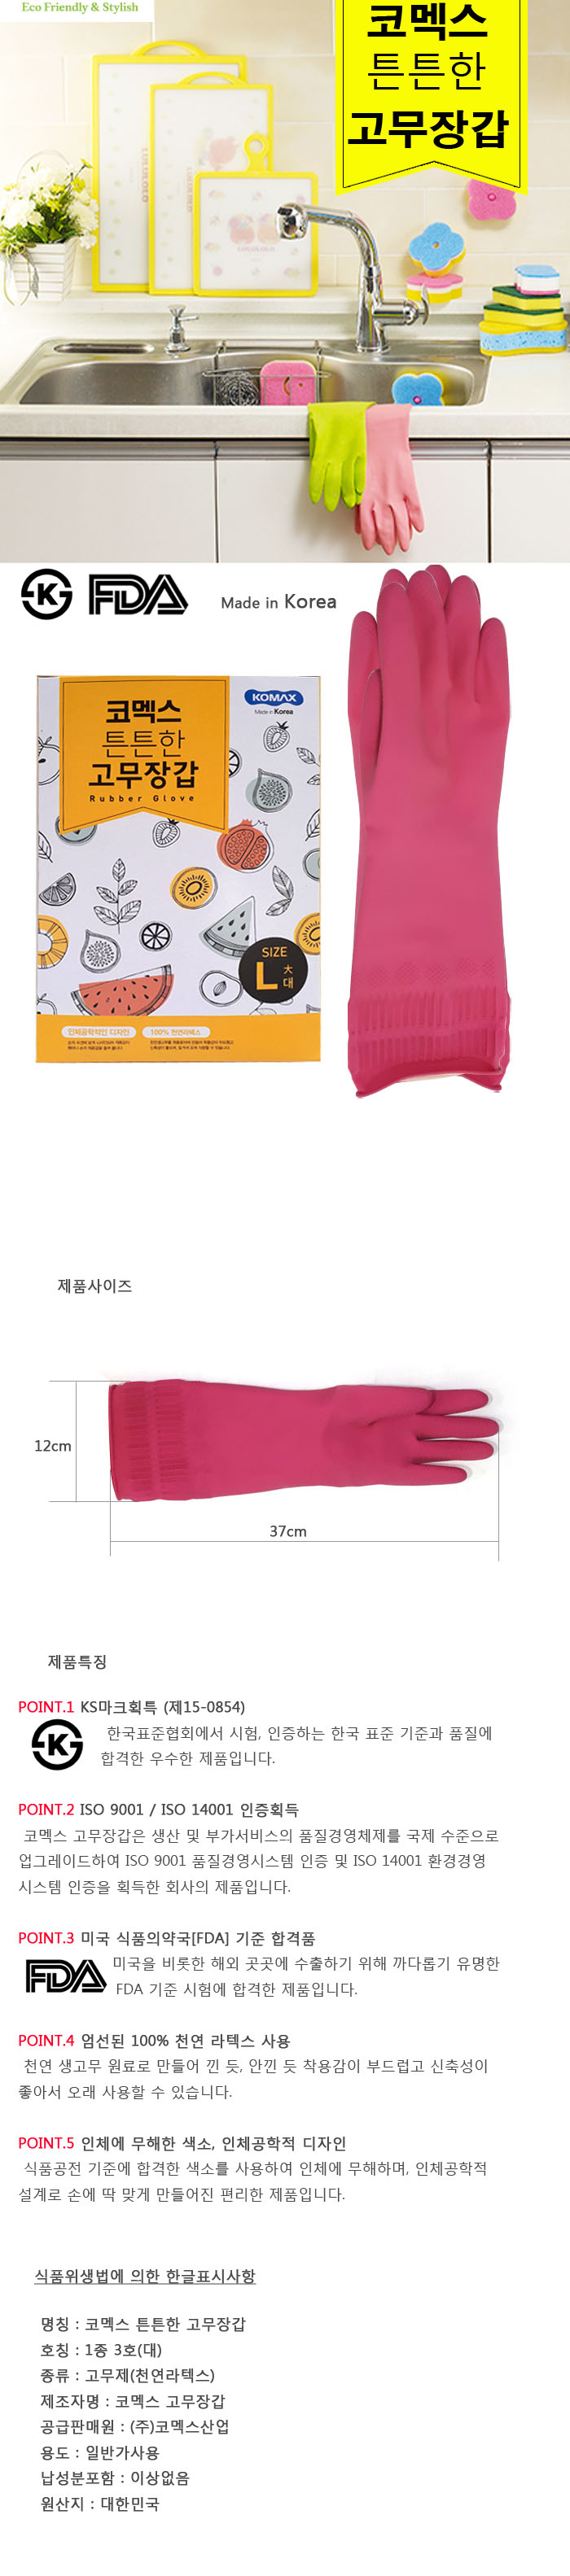 KOMAX_RUBBER%20GLOVES.jpg